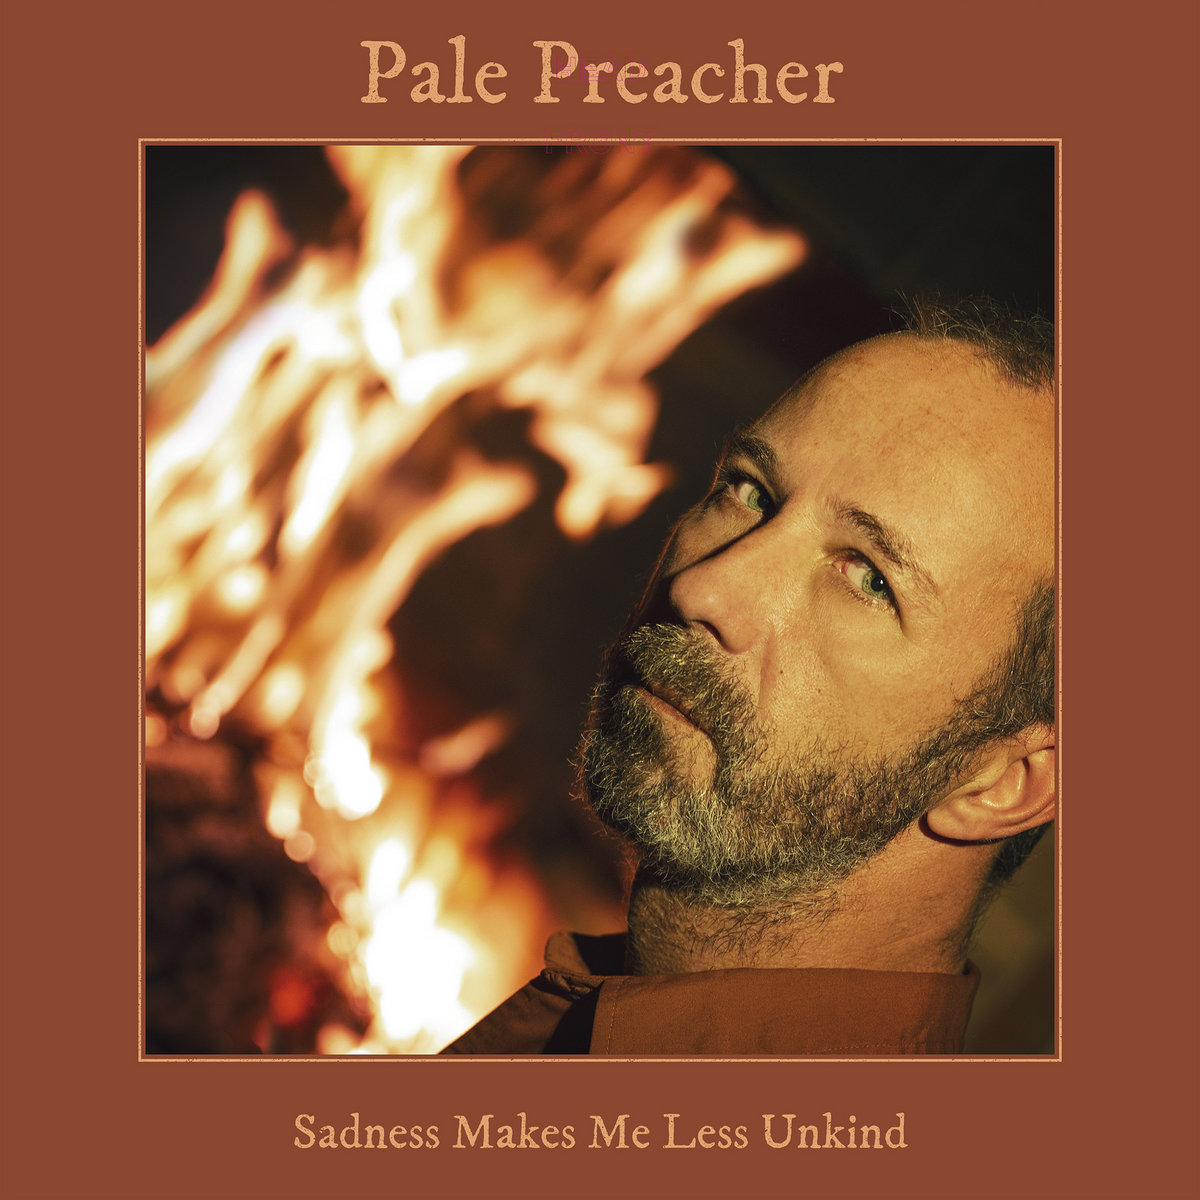 Reseña: PALE PREACHER.- 'Sadness Makes Me LessUnkind'